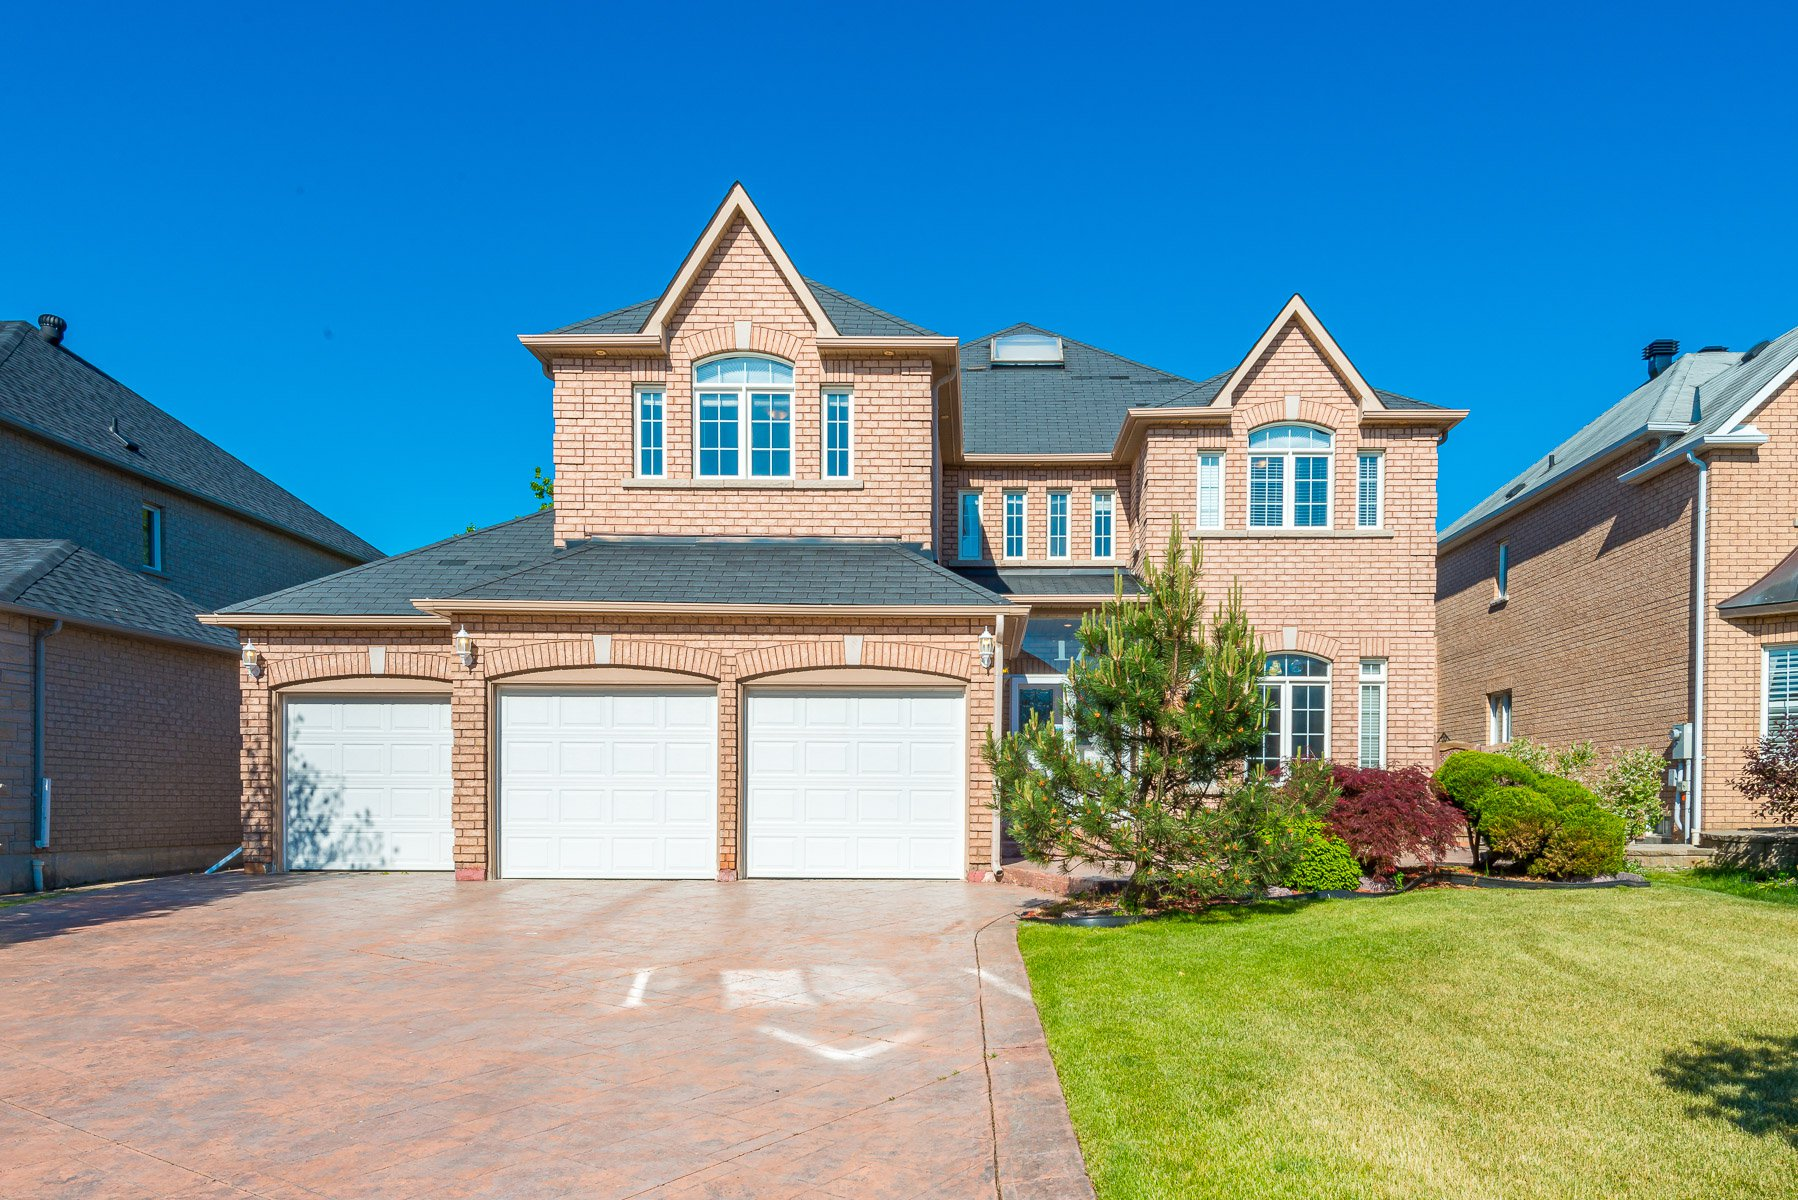 Main Photo: 17 Mumberson Court in Markham: Cachet Freehold for sale : MLS®# N4811542